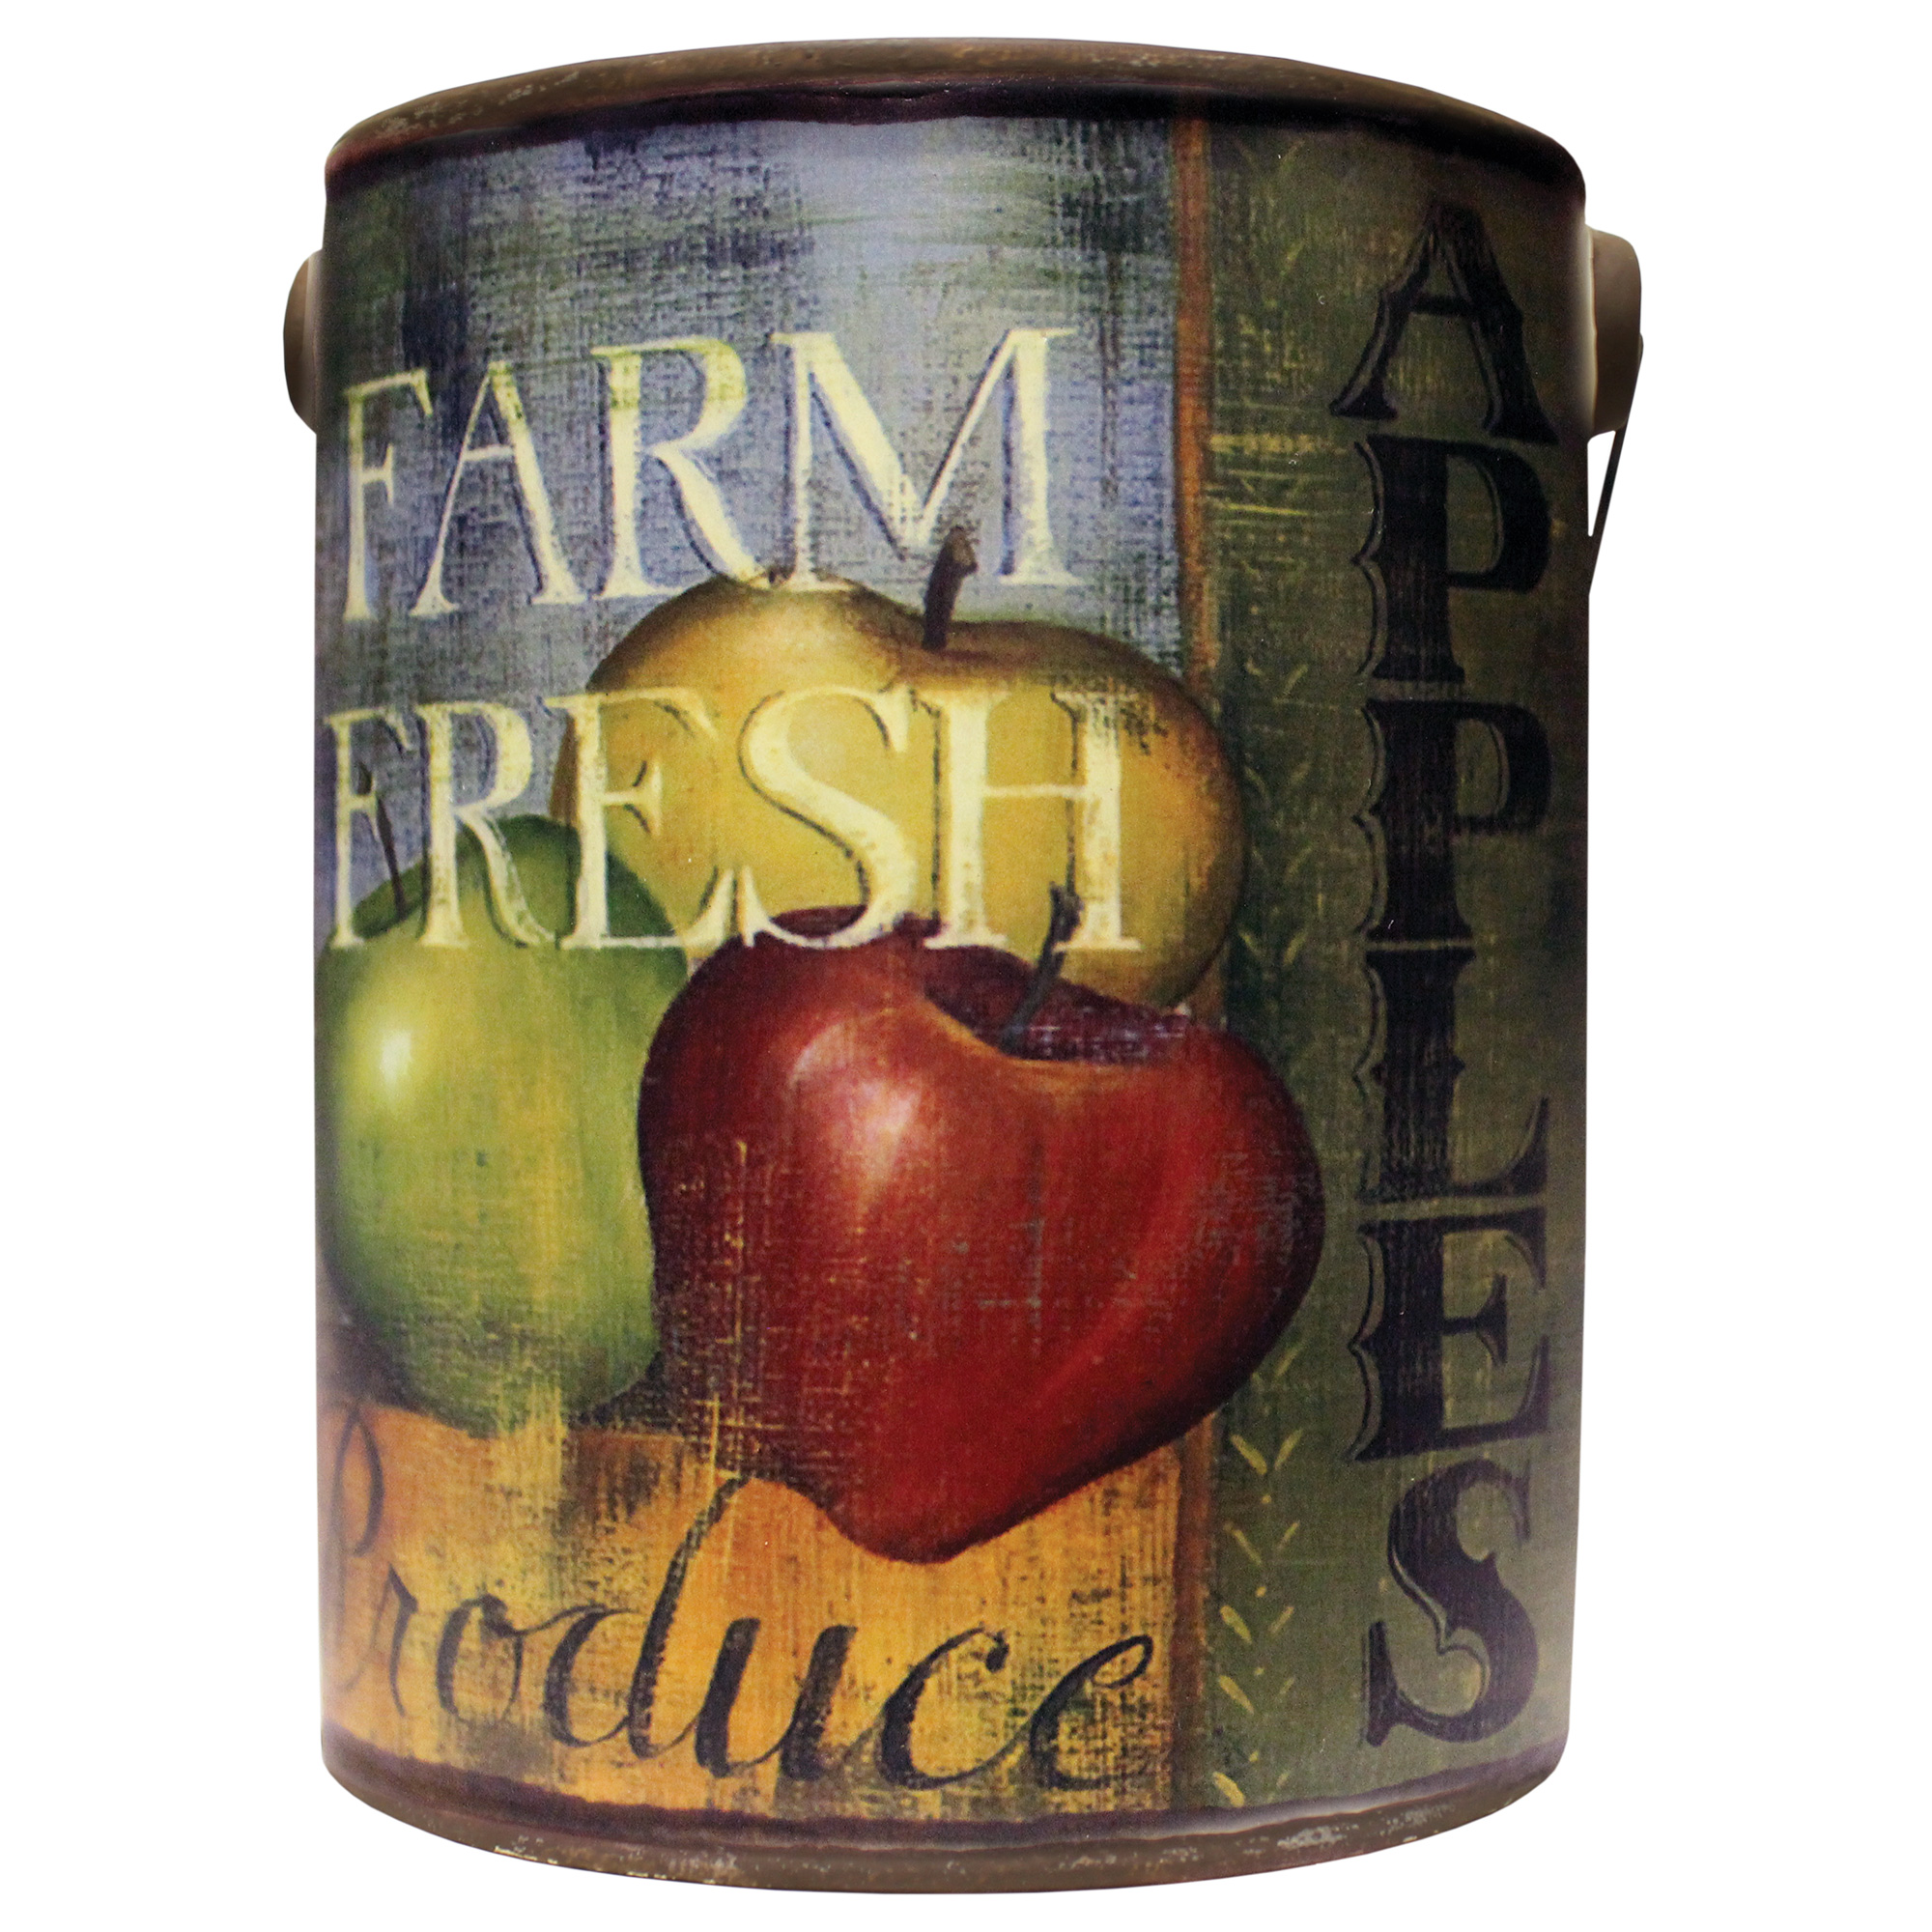 LARGE EMPTY FARM FRESH BUCKET- JUICY APPLE